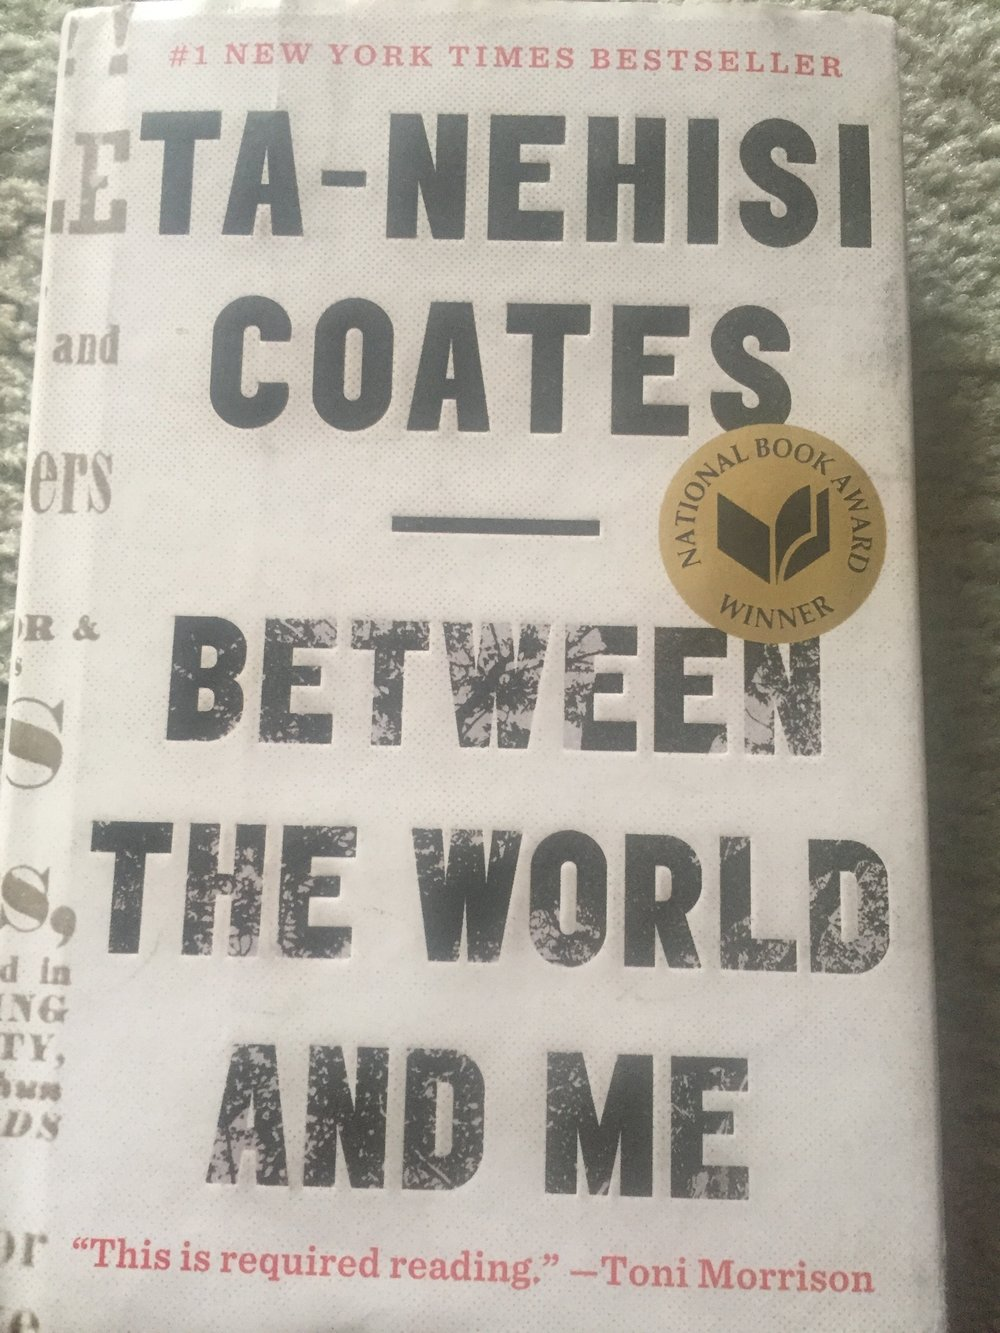 Between the World and Me, by Ta-Nehisi Coates